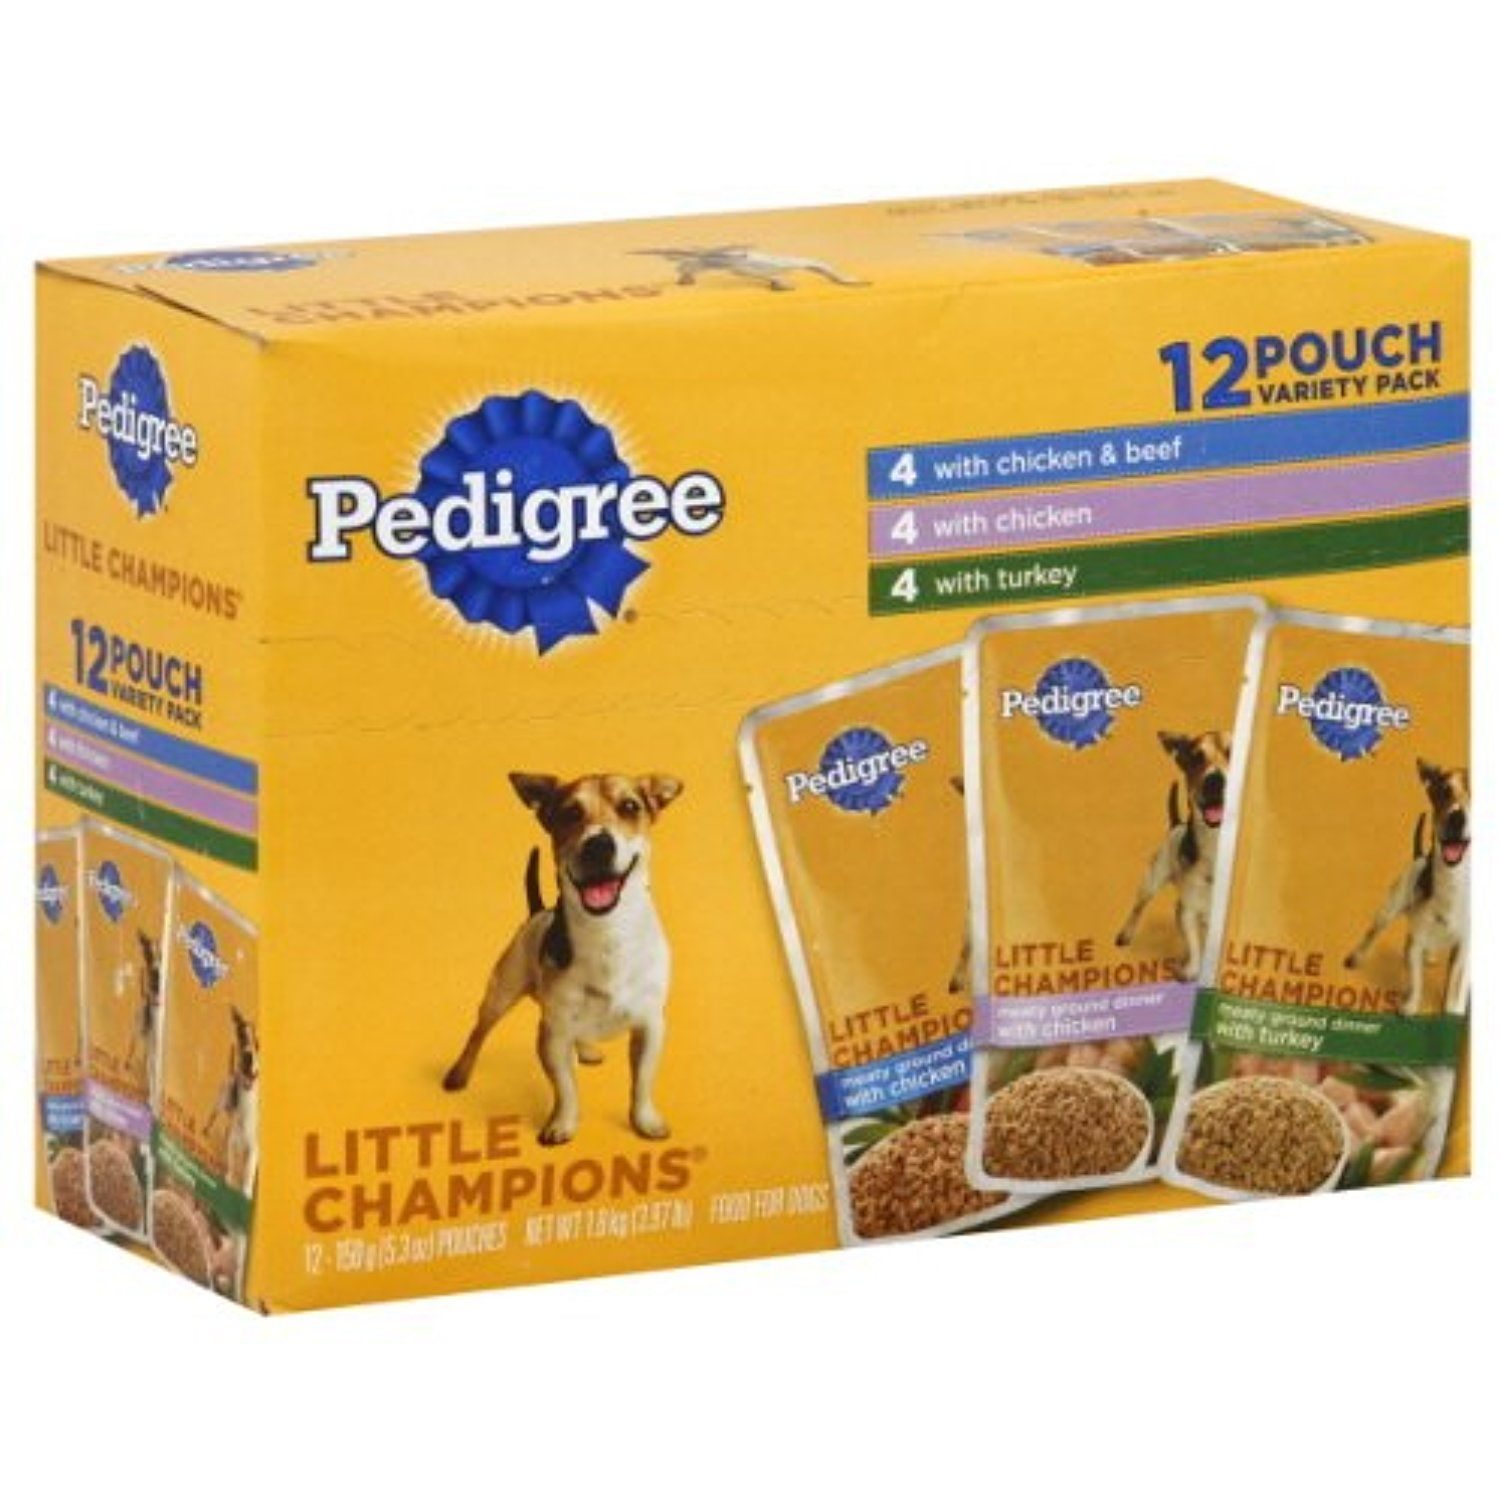 Pedigree Little Champions Food For Small Dogs Chicken Beef